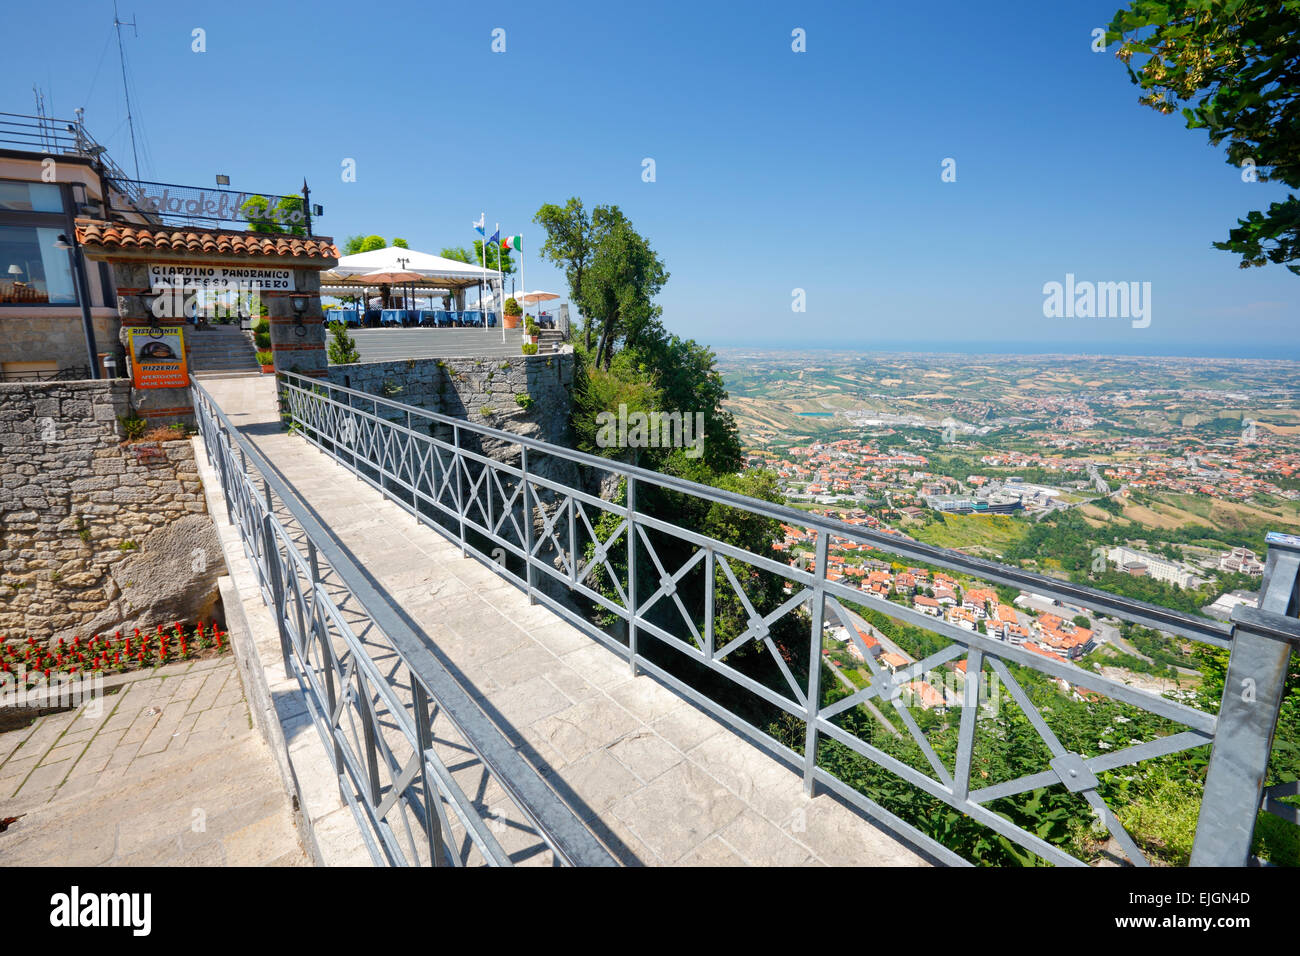 San Marino -  viewpoint from the top to the Adriatic sea. - Stock Image